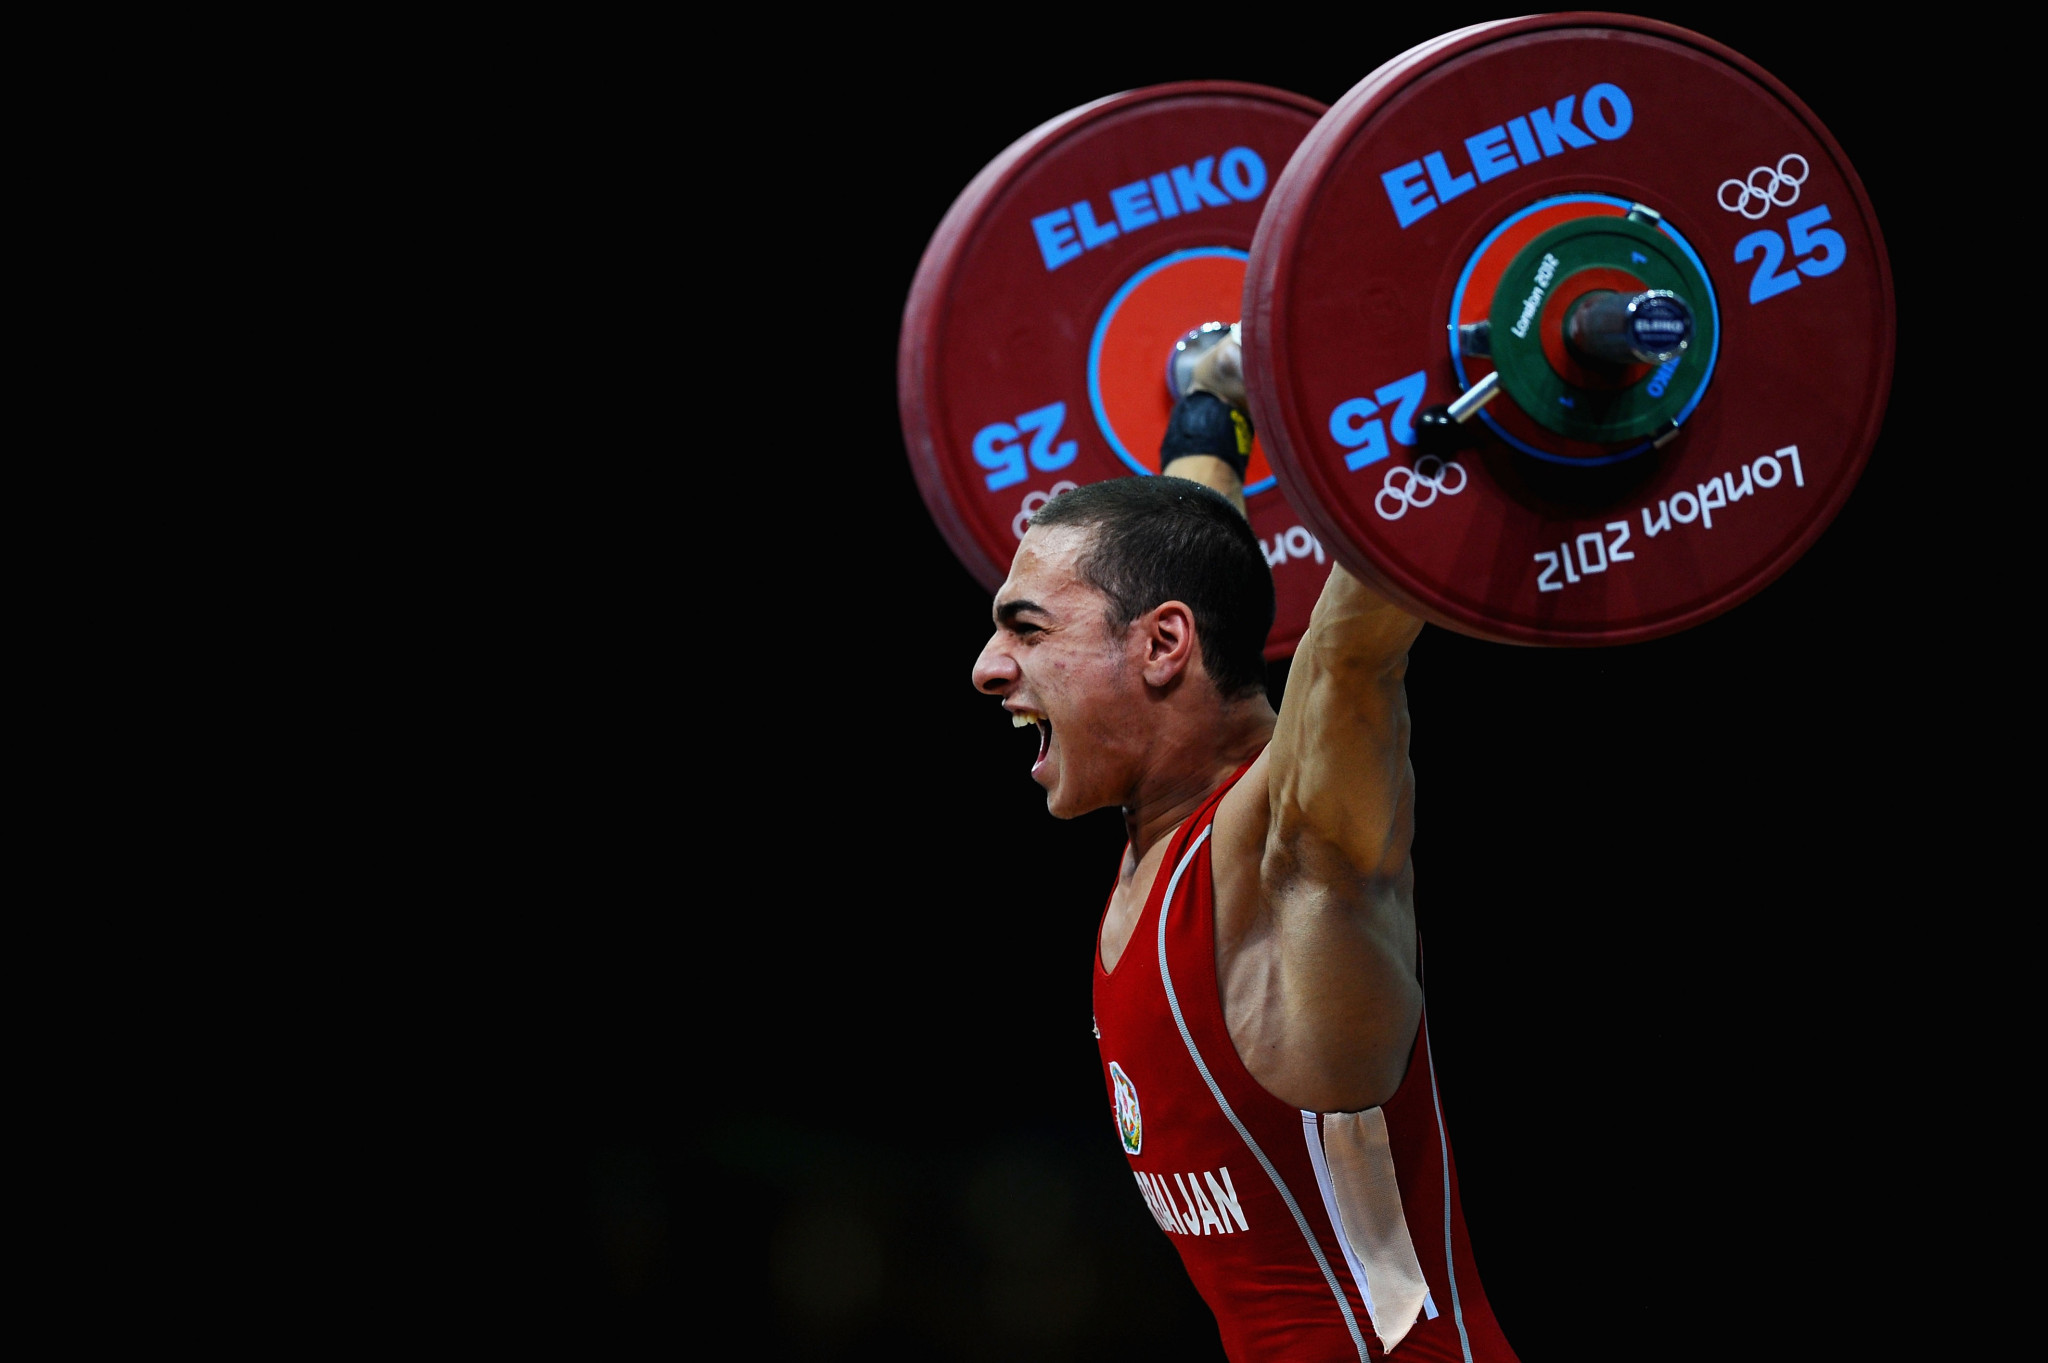 Valentin Hristov won a bronze medal at London 2012, but was later stripped of it ©Getty Images